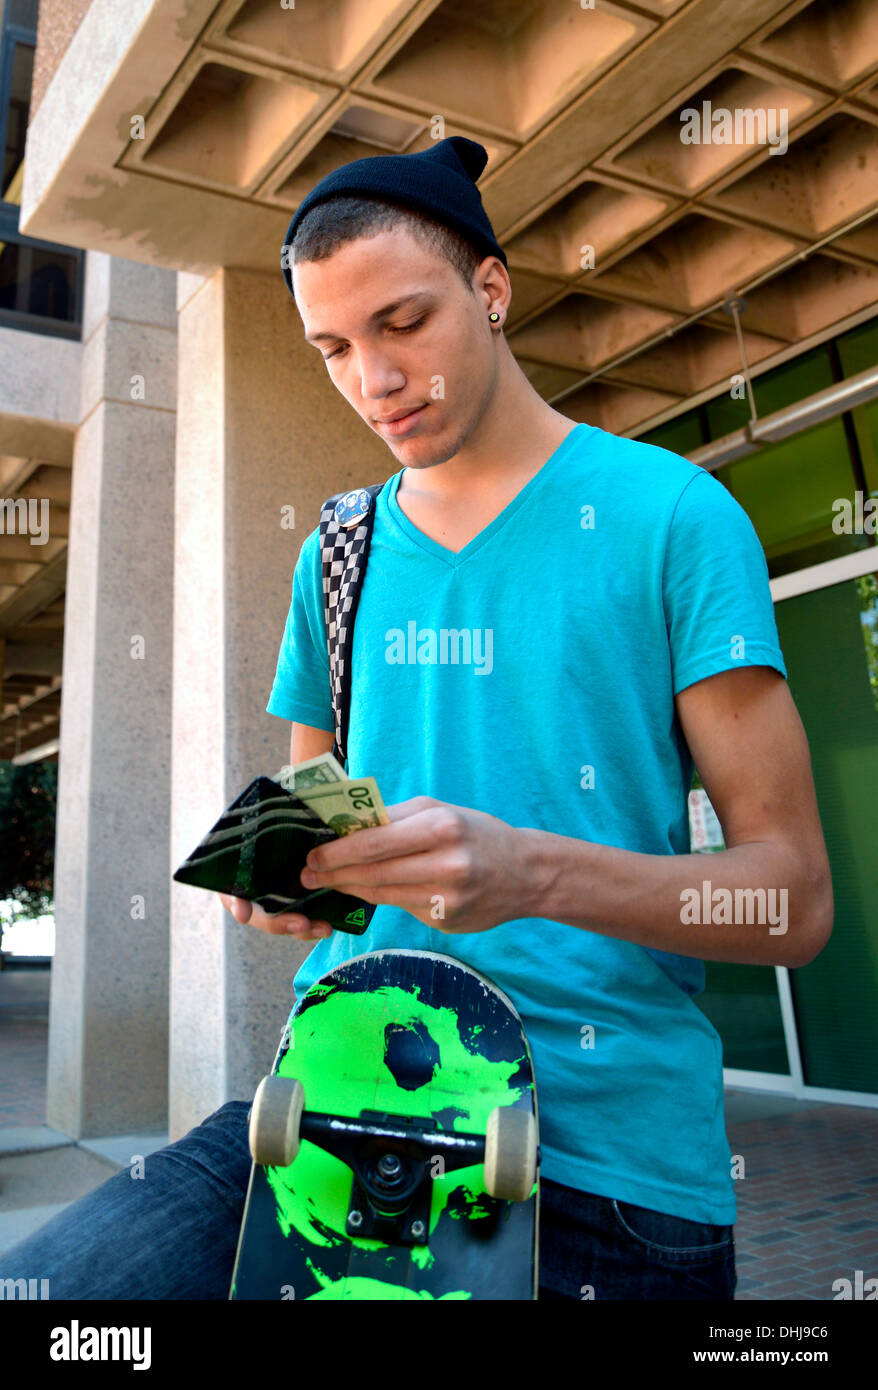 A young man with a wallet and money on a college campus. Stock Photo